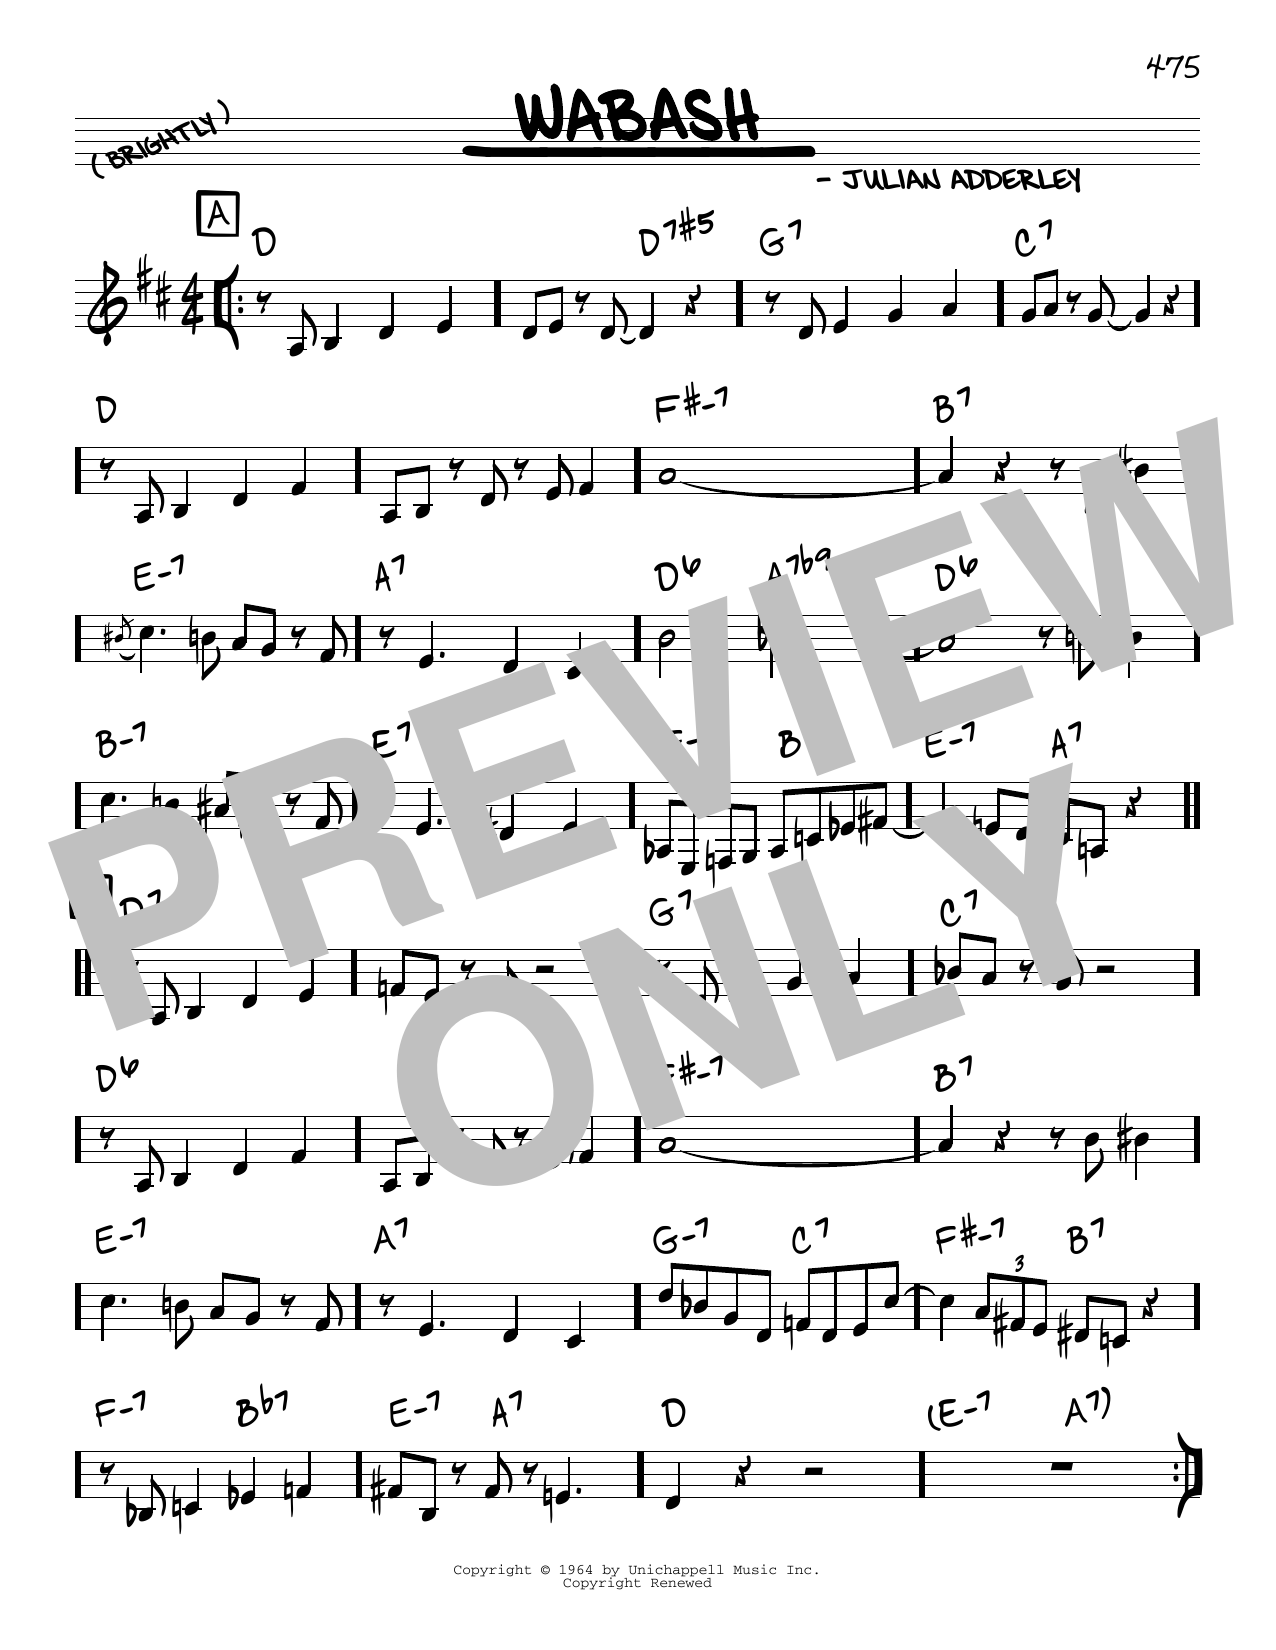 Cannonball Adderley Wabash sheet music notes and chords. Download Printable PDF.